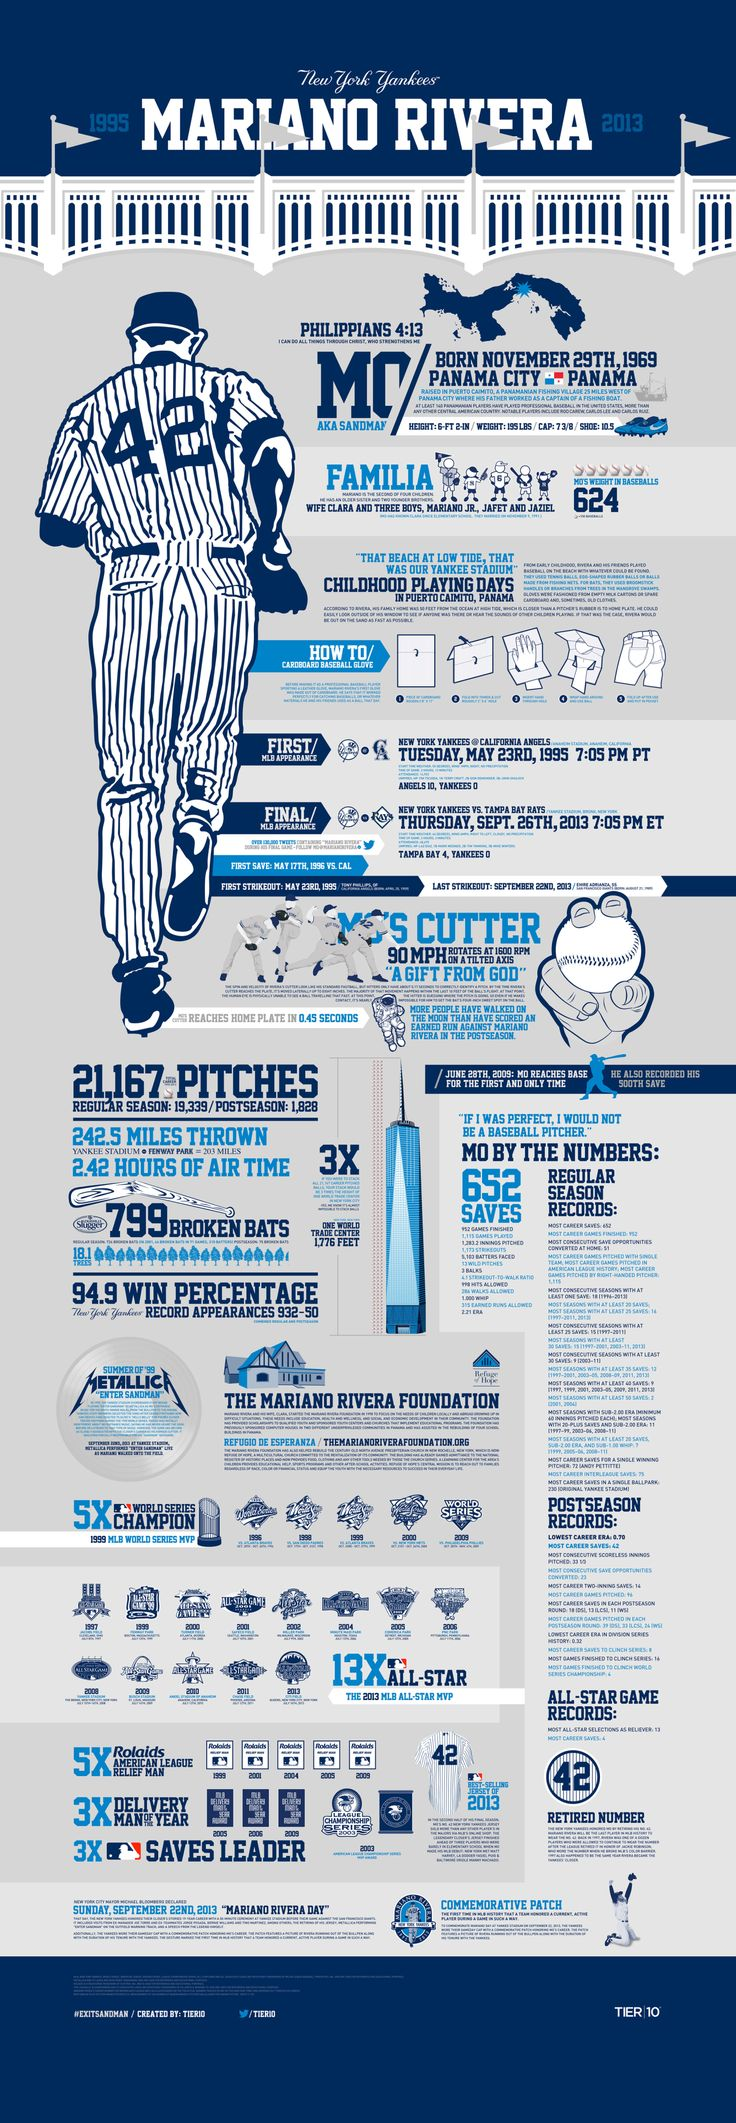 New York Yankees: Mariano Rivera [INFOGRAPHIC] #NewYorkYankees #MarianoRivera